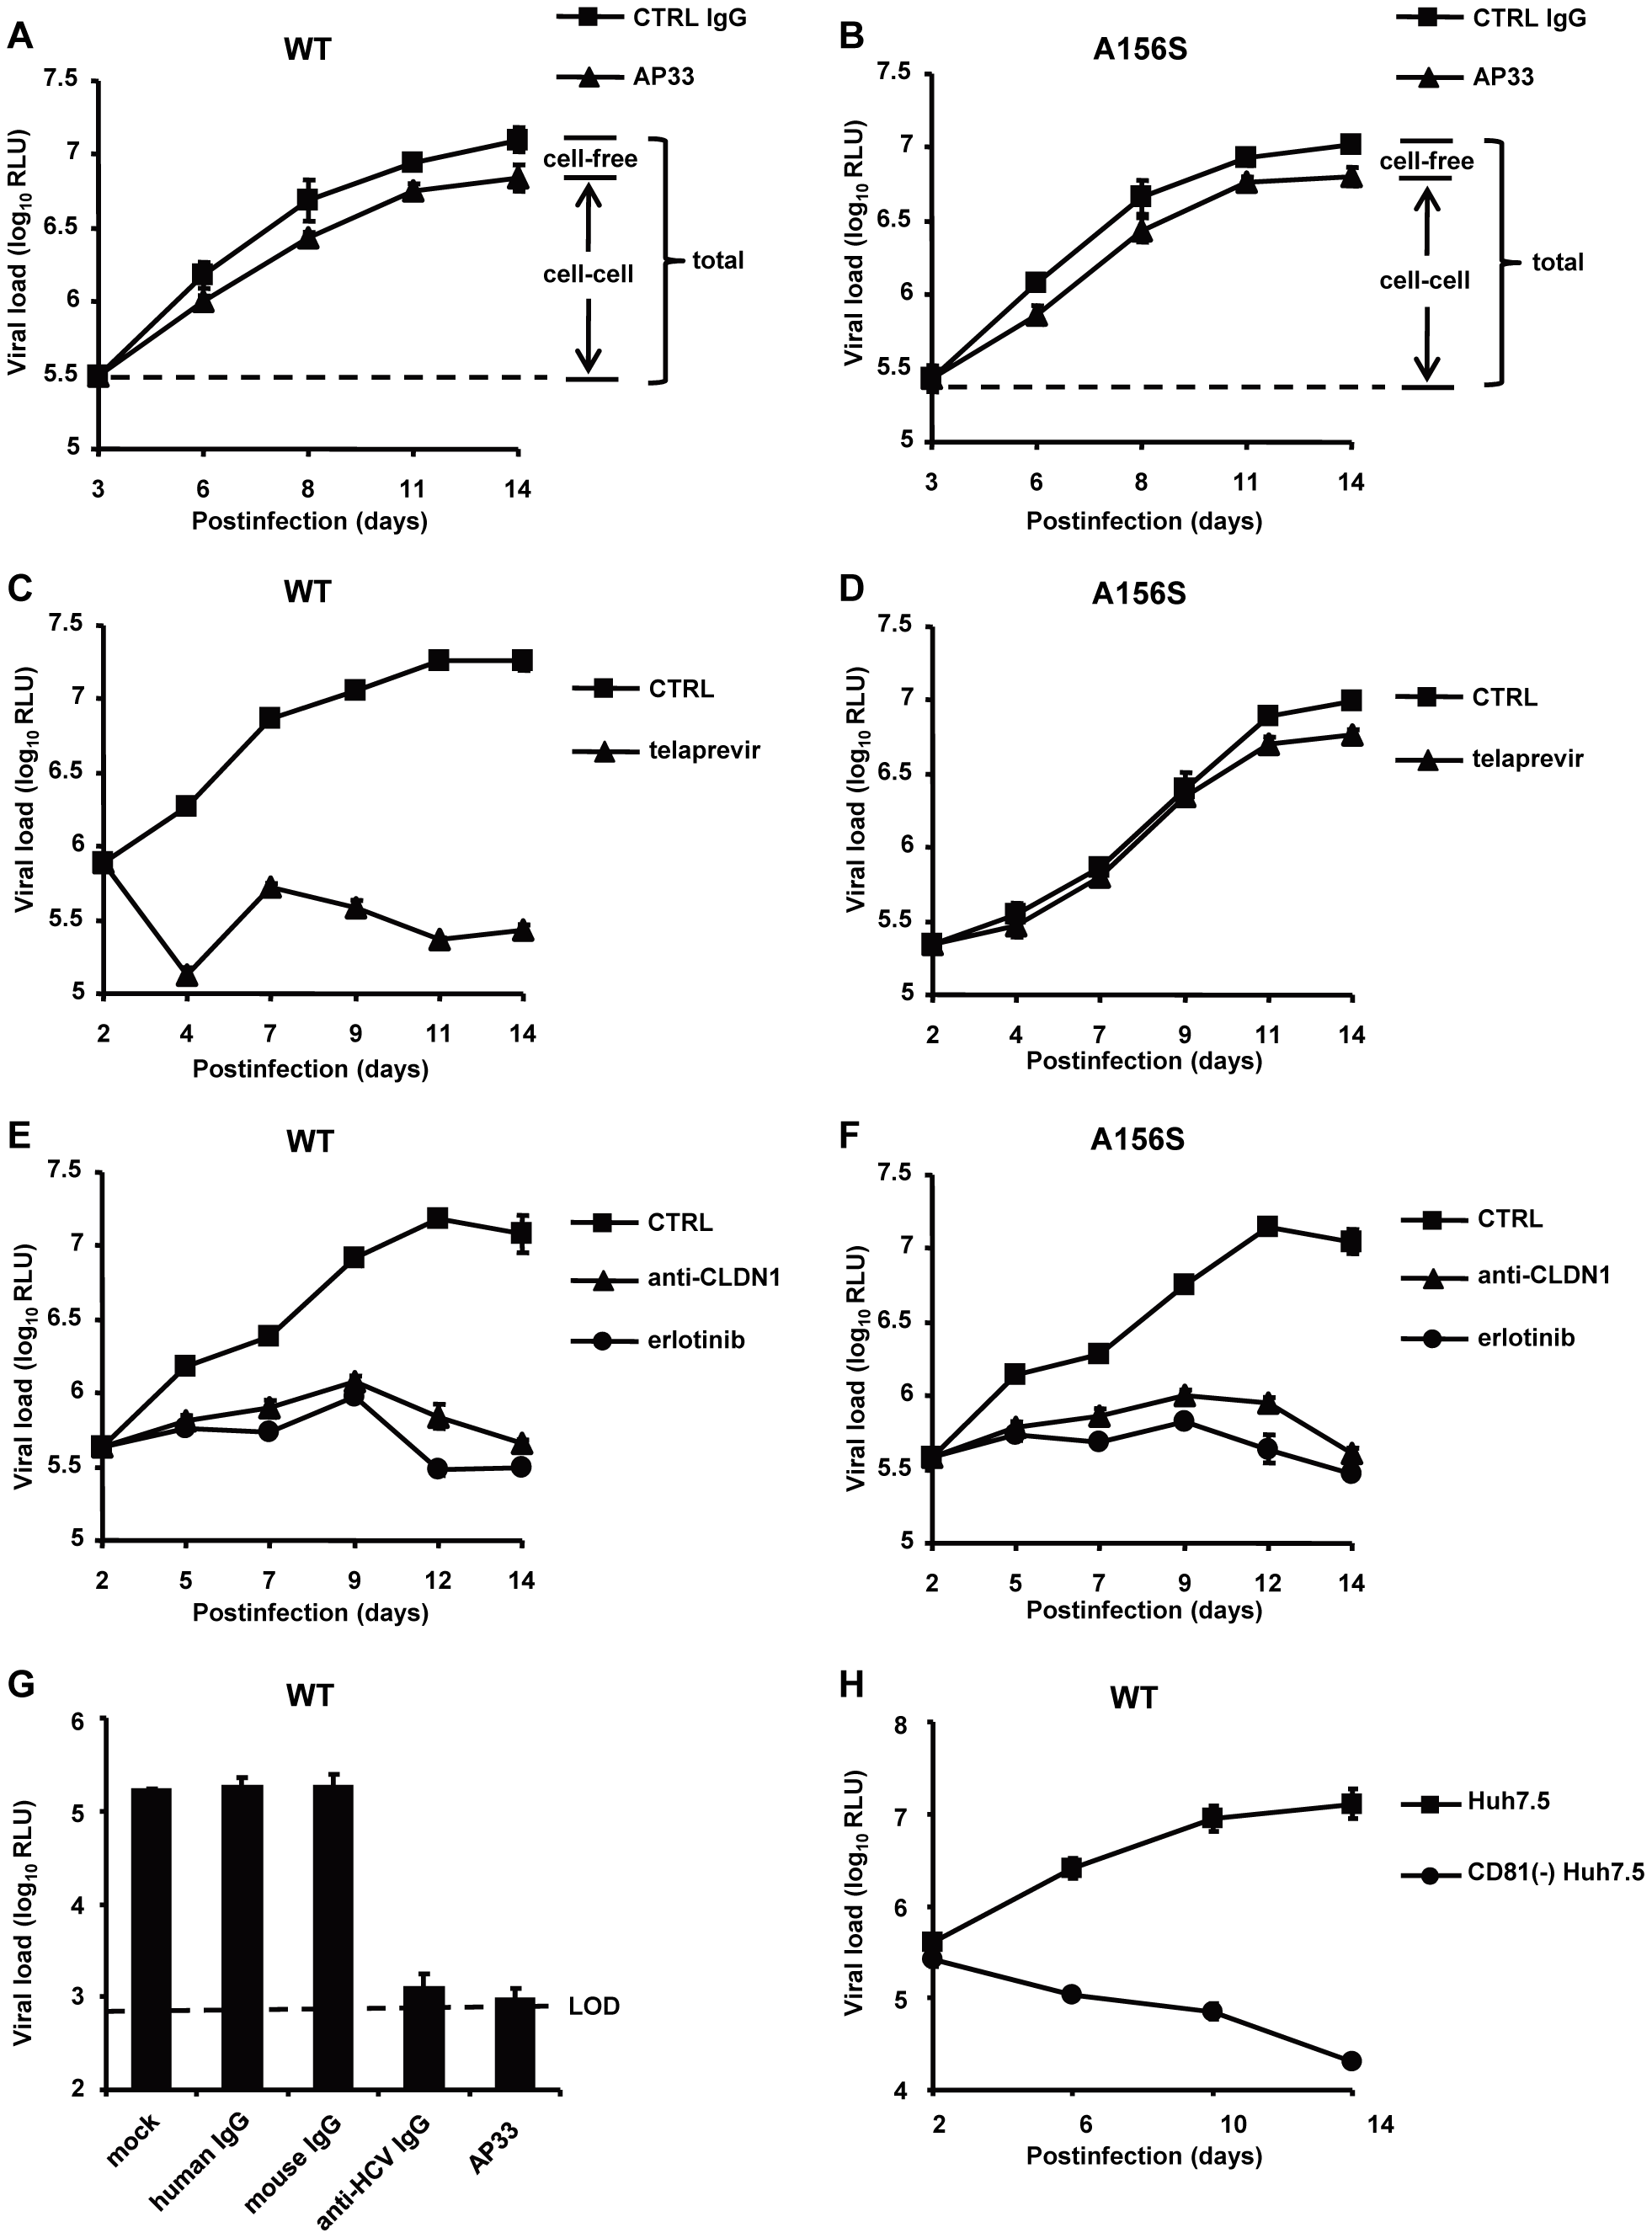 The spread of DAA-resistant viruses is resistant to neutralizing antibodies against HCV but is efficiently inhibited by HTEIs.